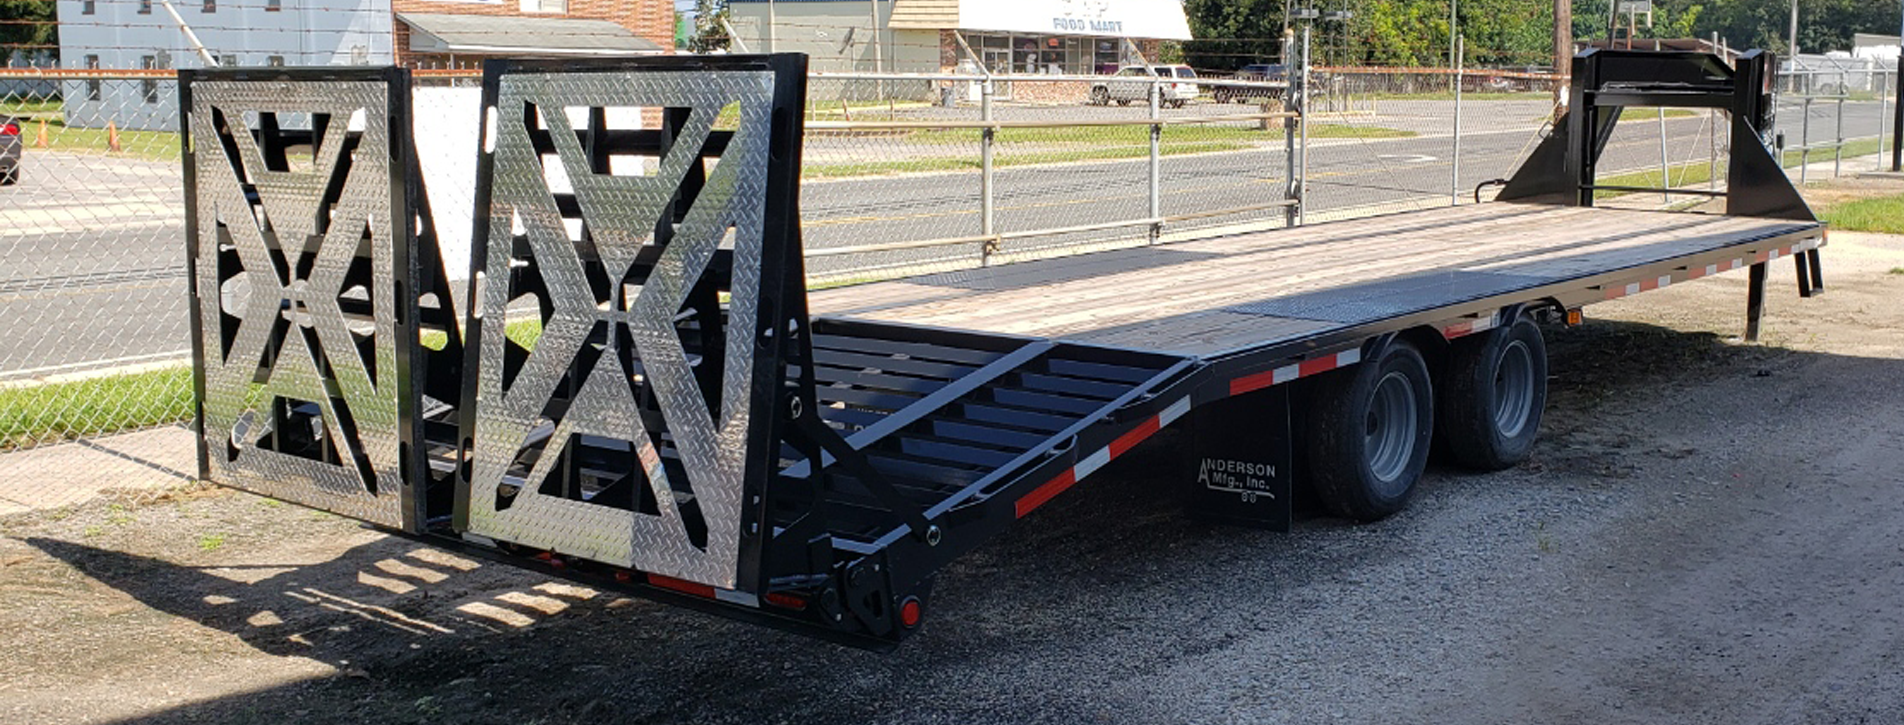 CHECK OUT OUR INVENTORY OF UTILITY TRAILERS